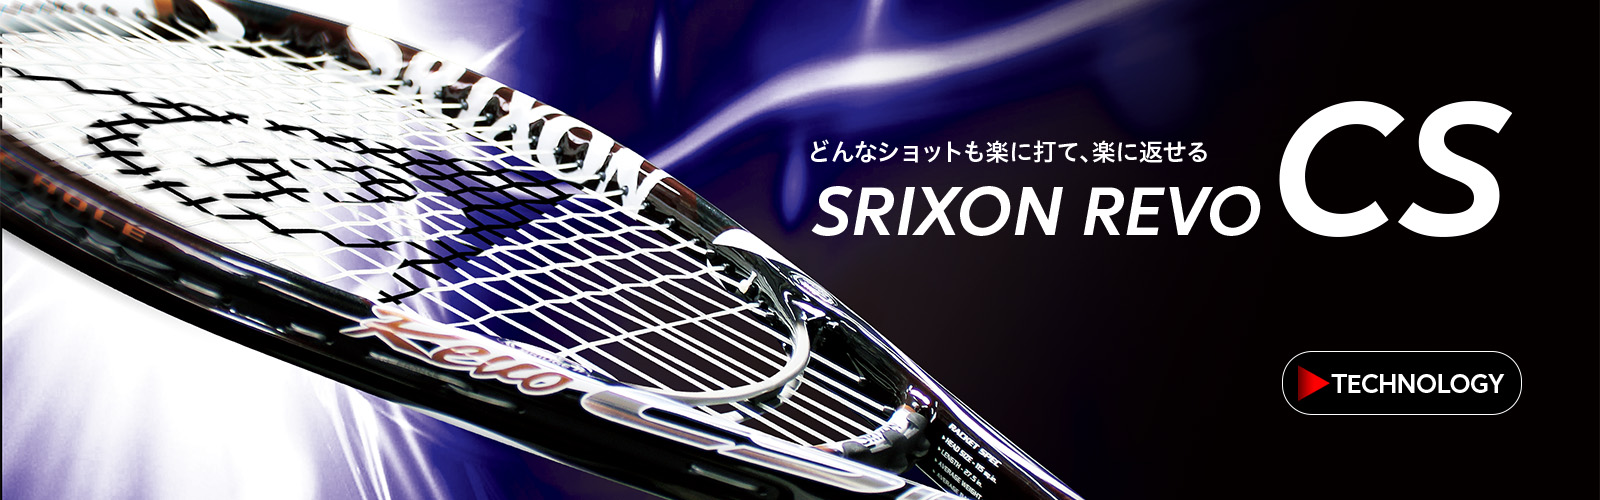 SRIXON REVO CS 8.0 TECHNOLOGY